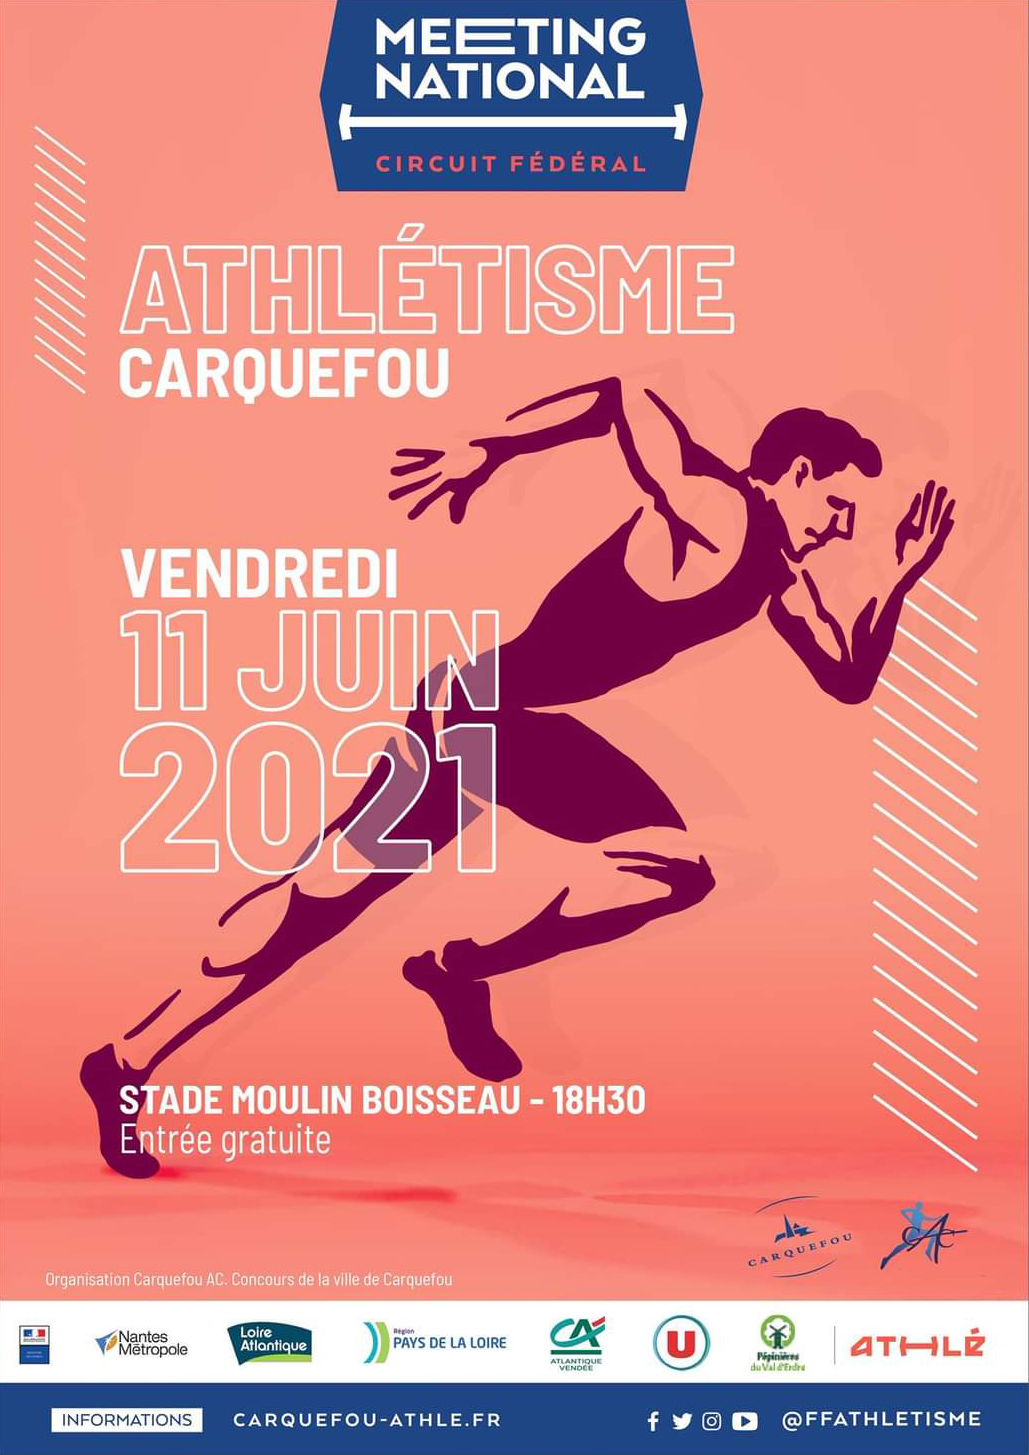 MEETING DE CARQUEFOU 2021